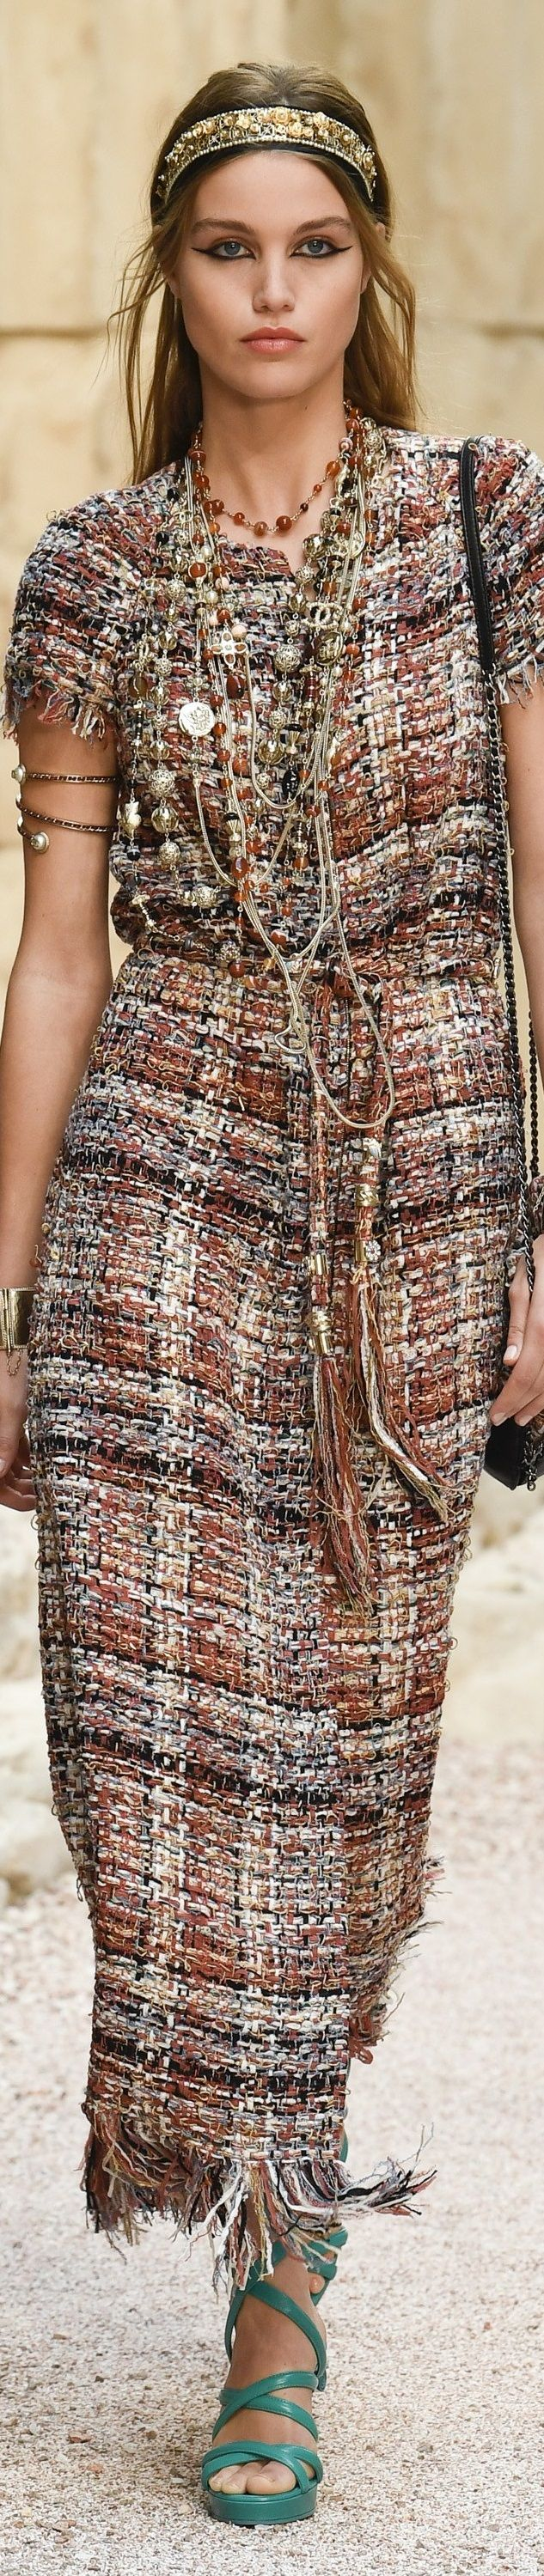 """Chanel Cruise 2018 at the Grand Palais in Paris, """"The Modernity of Antiquity"""" inspired by Greece. vogue.com"""